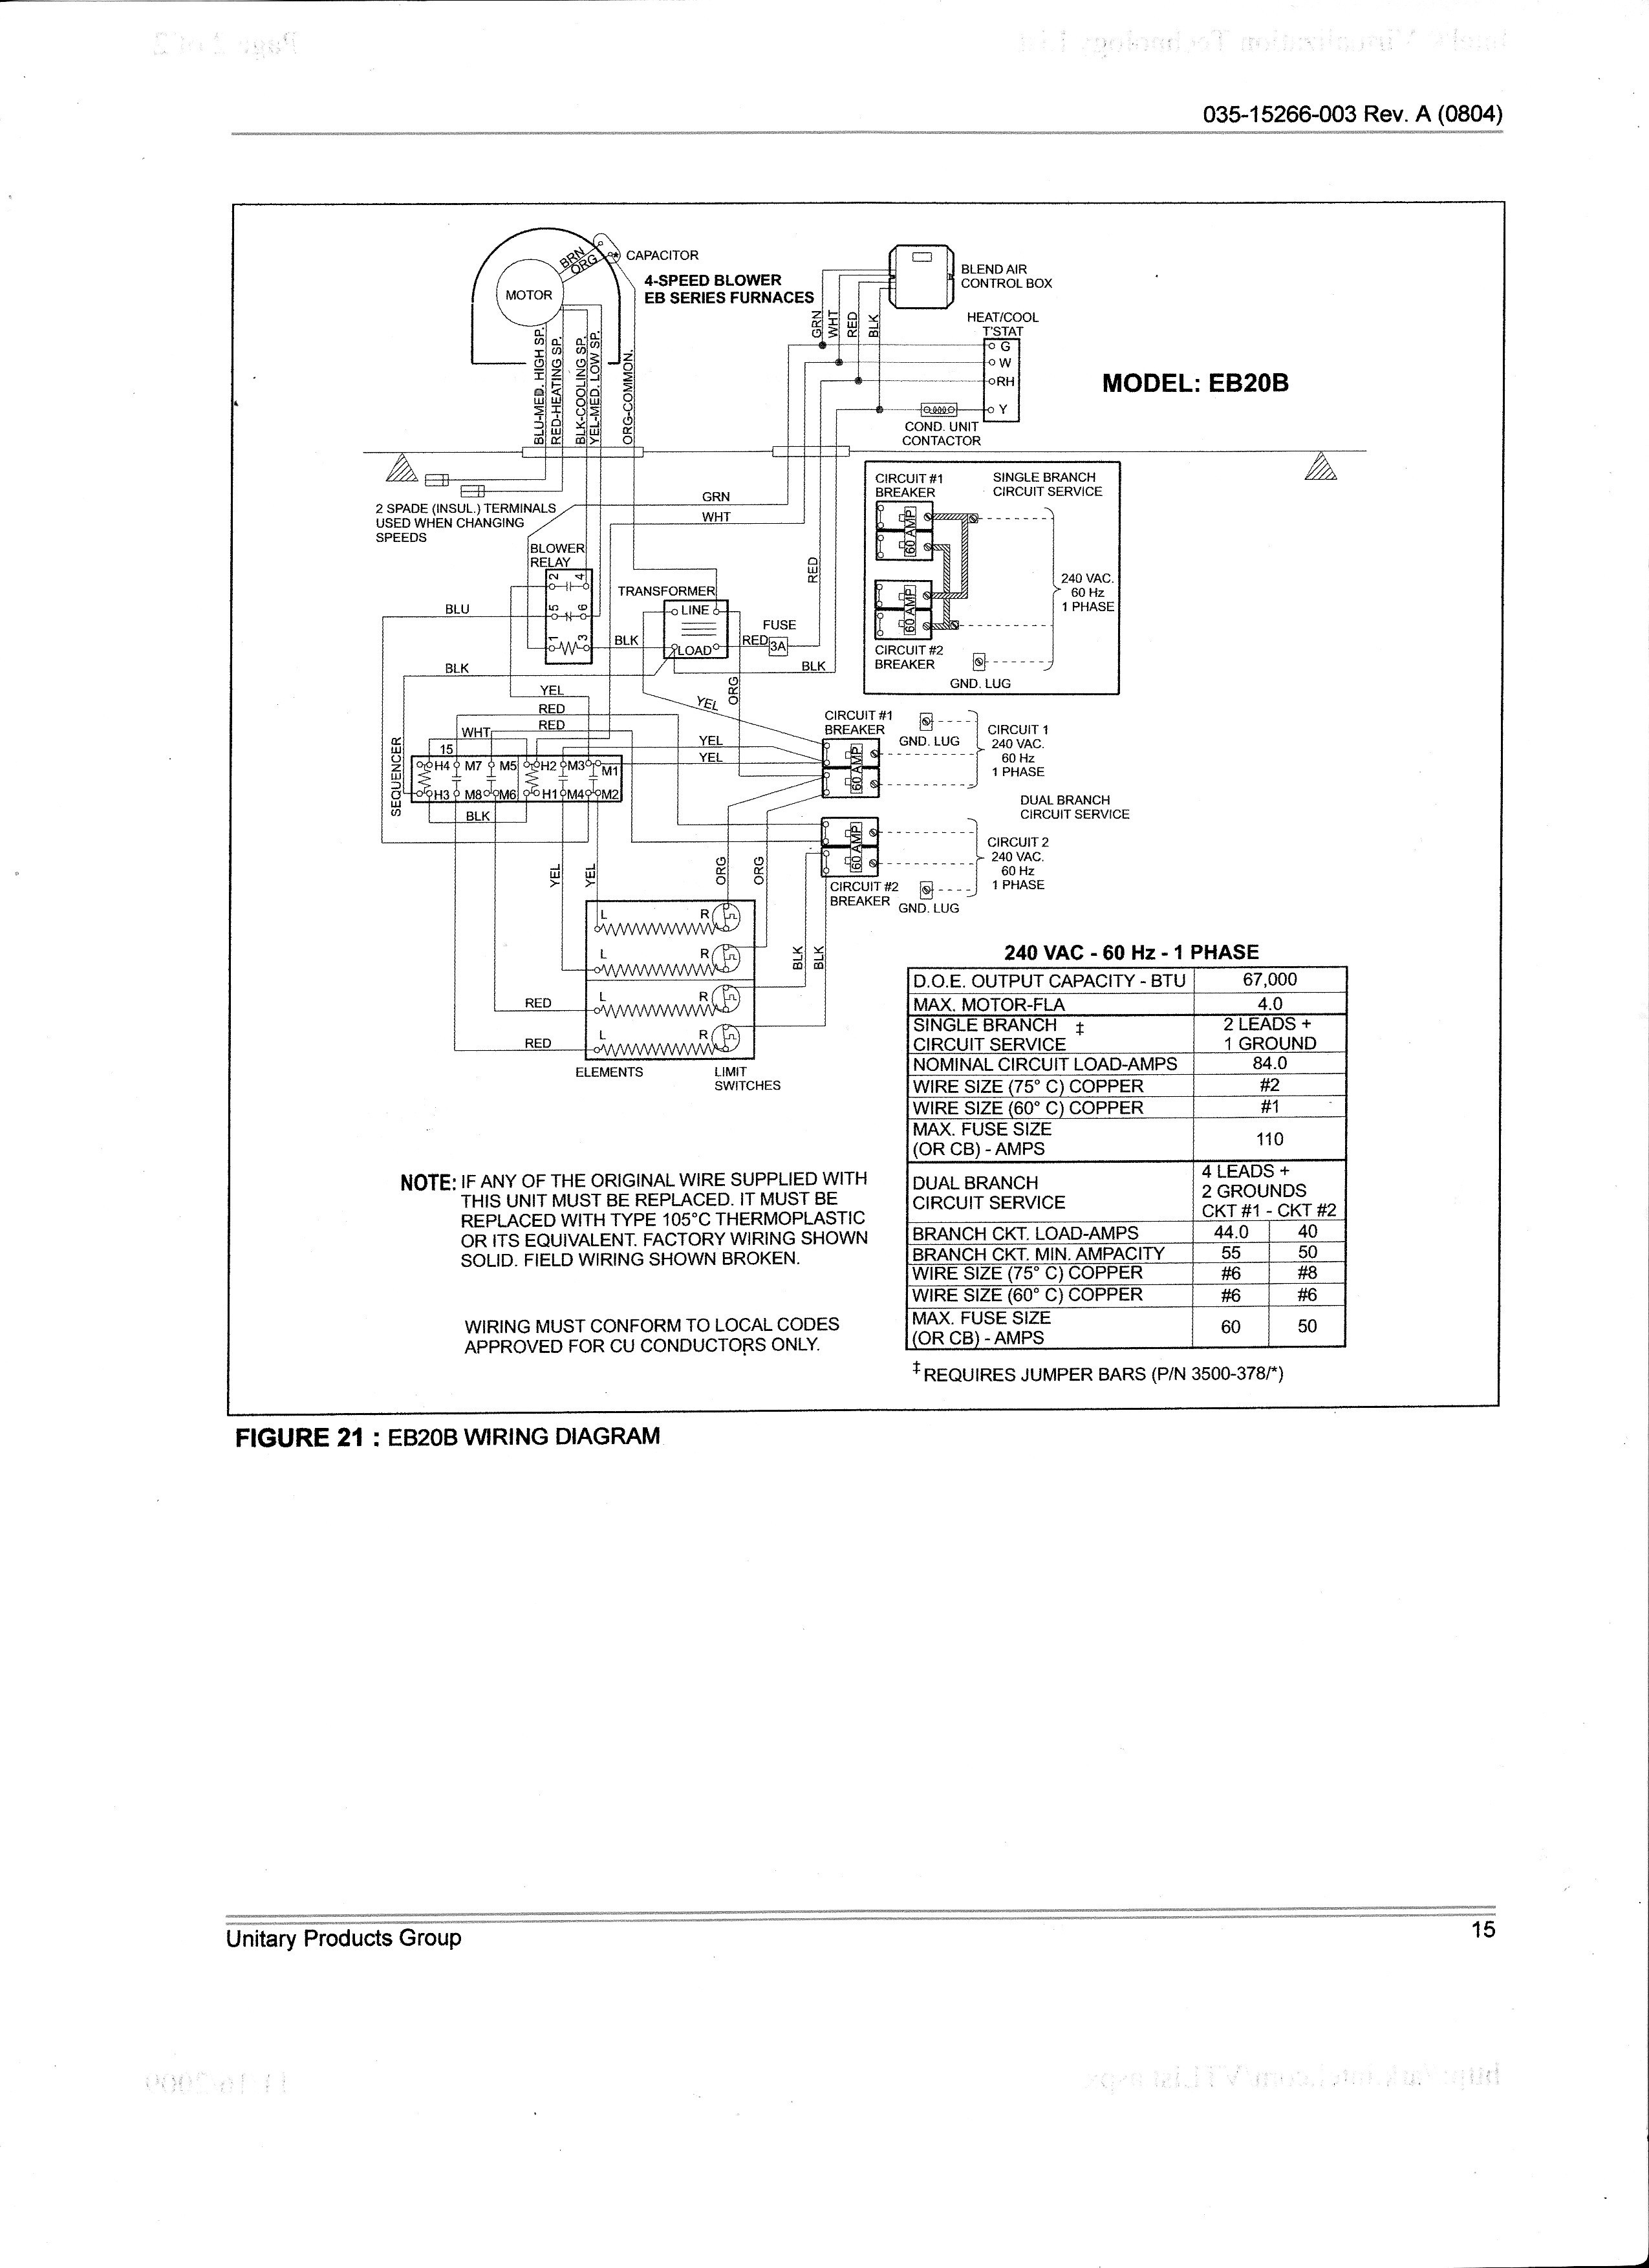 furnace fan relay wiring diagram Collection-Wiring Diagram Fan Relay New Wiring Diagram Electric Fan Motors New Awesome Heat Sequencer Wiring 18-a